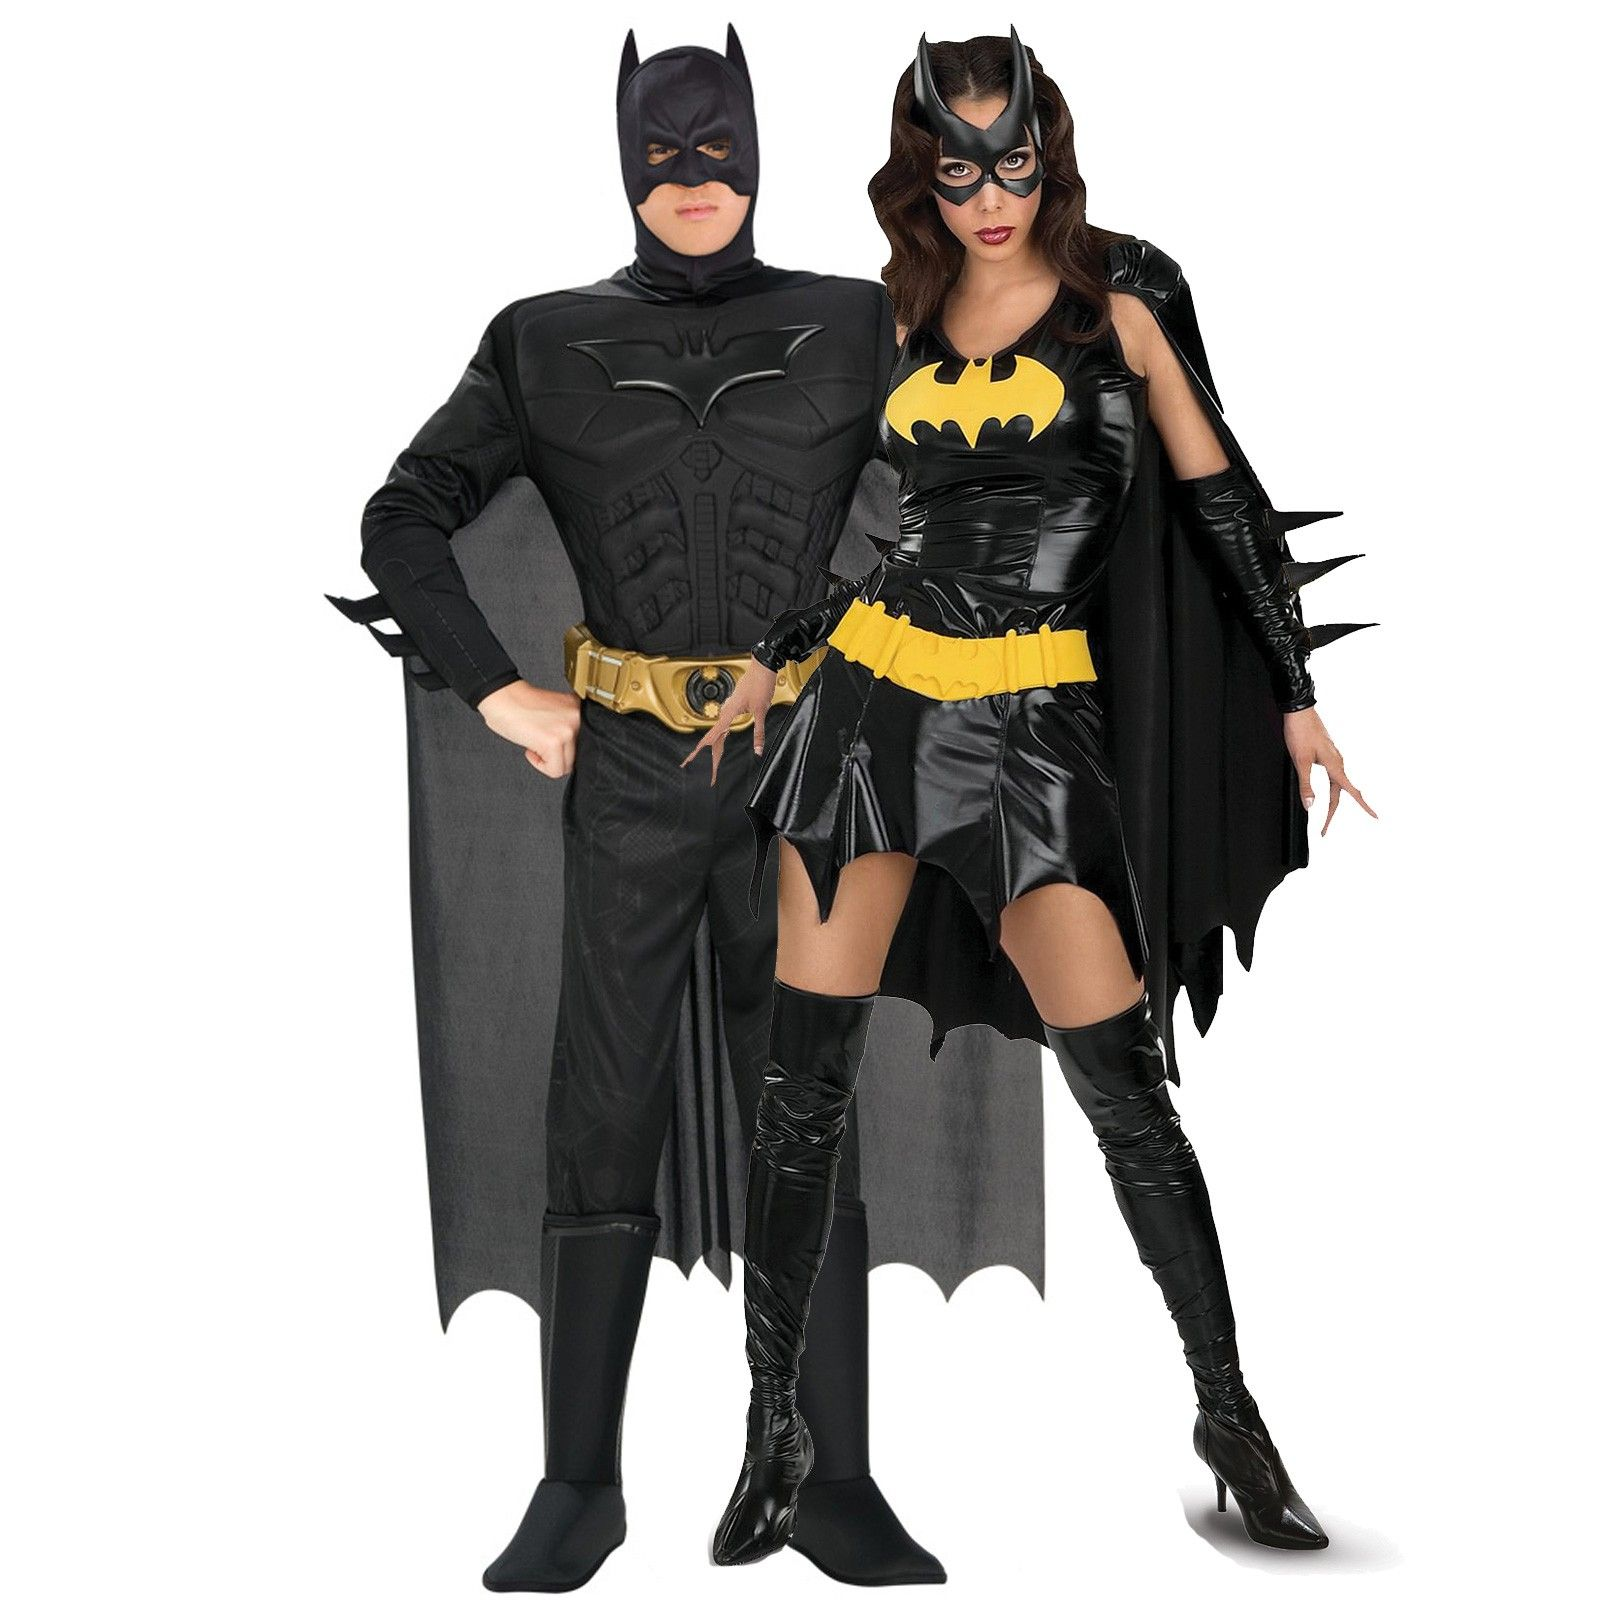 Pin on Sexy Couples Costumes